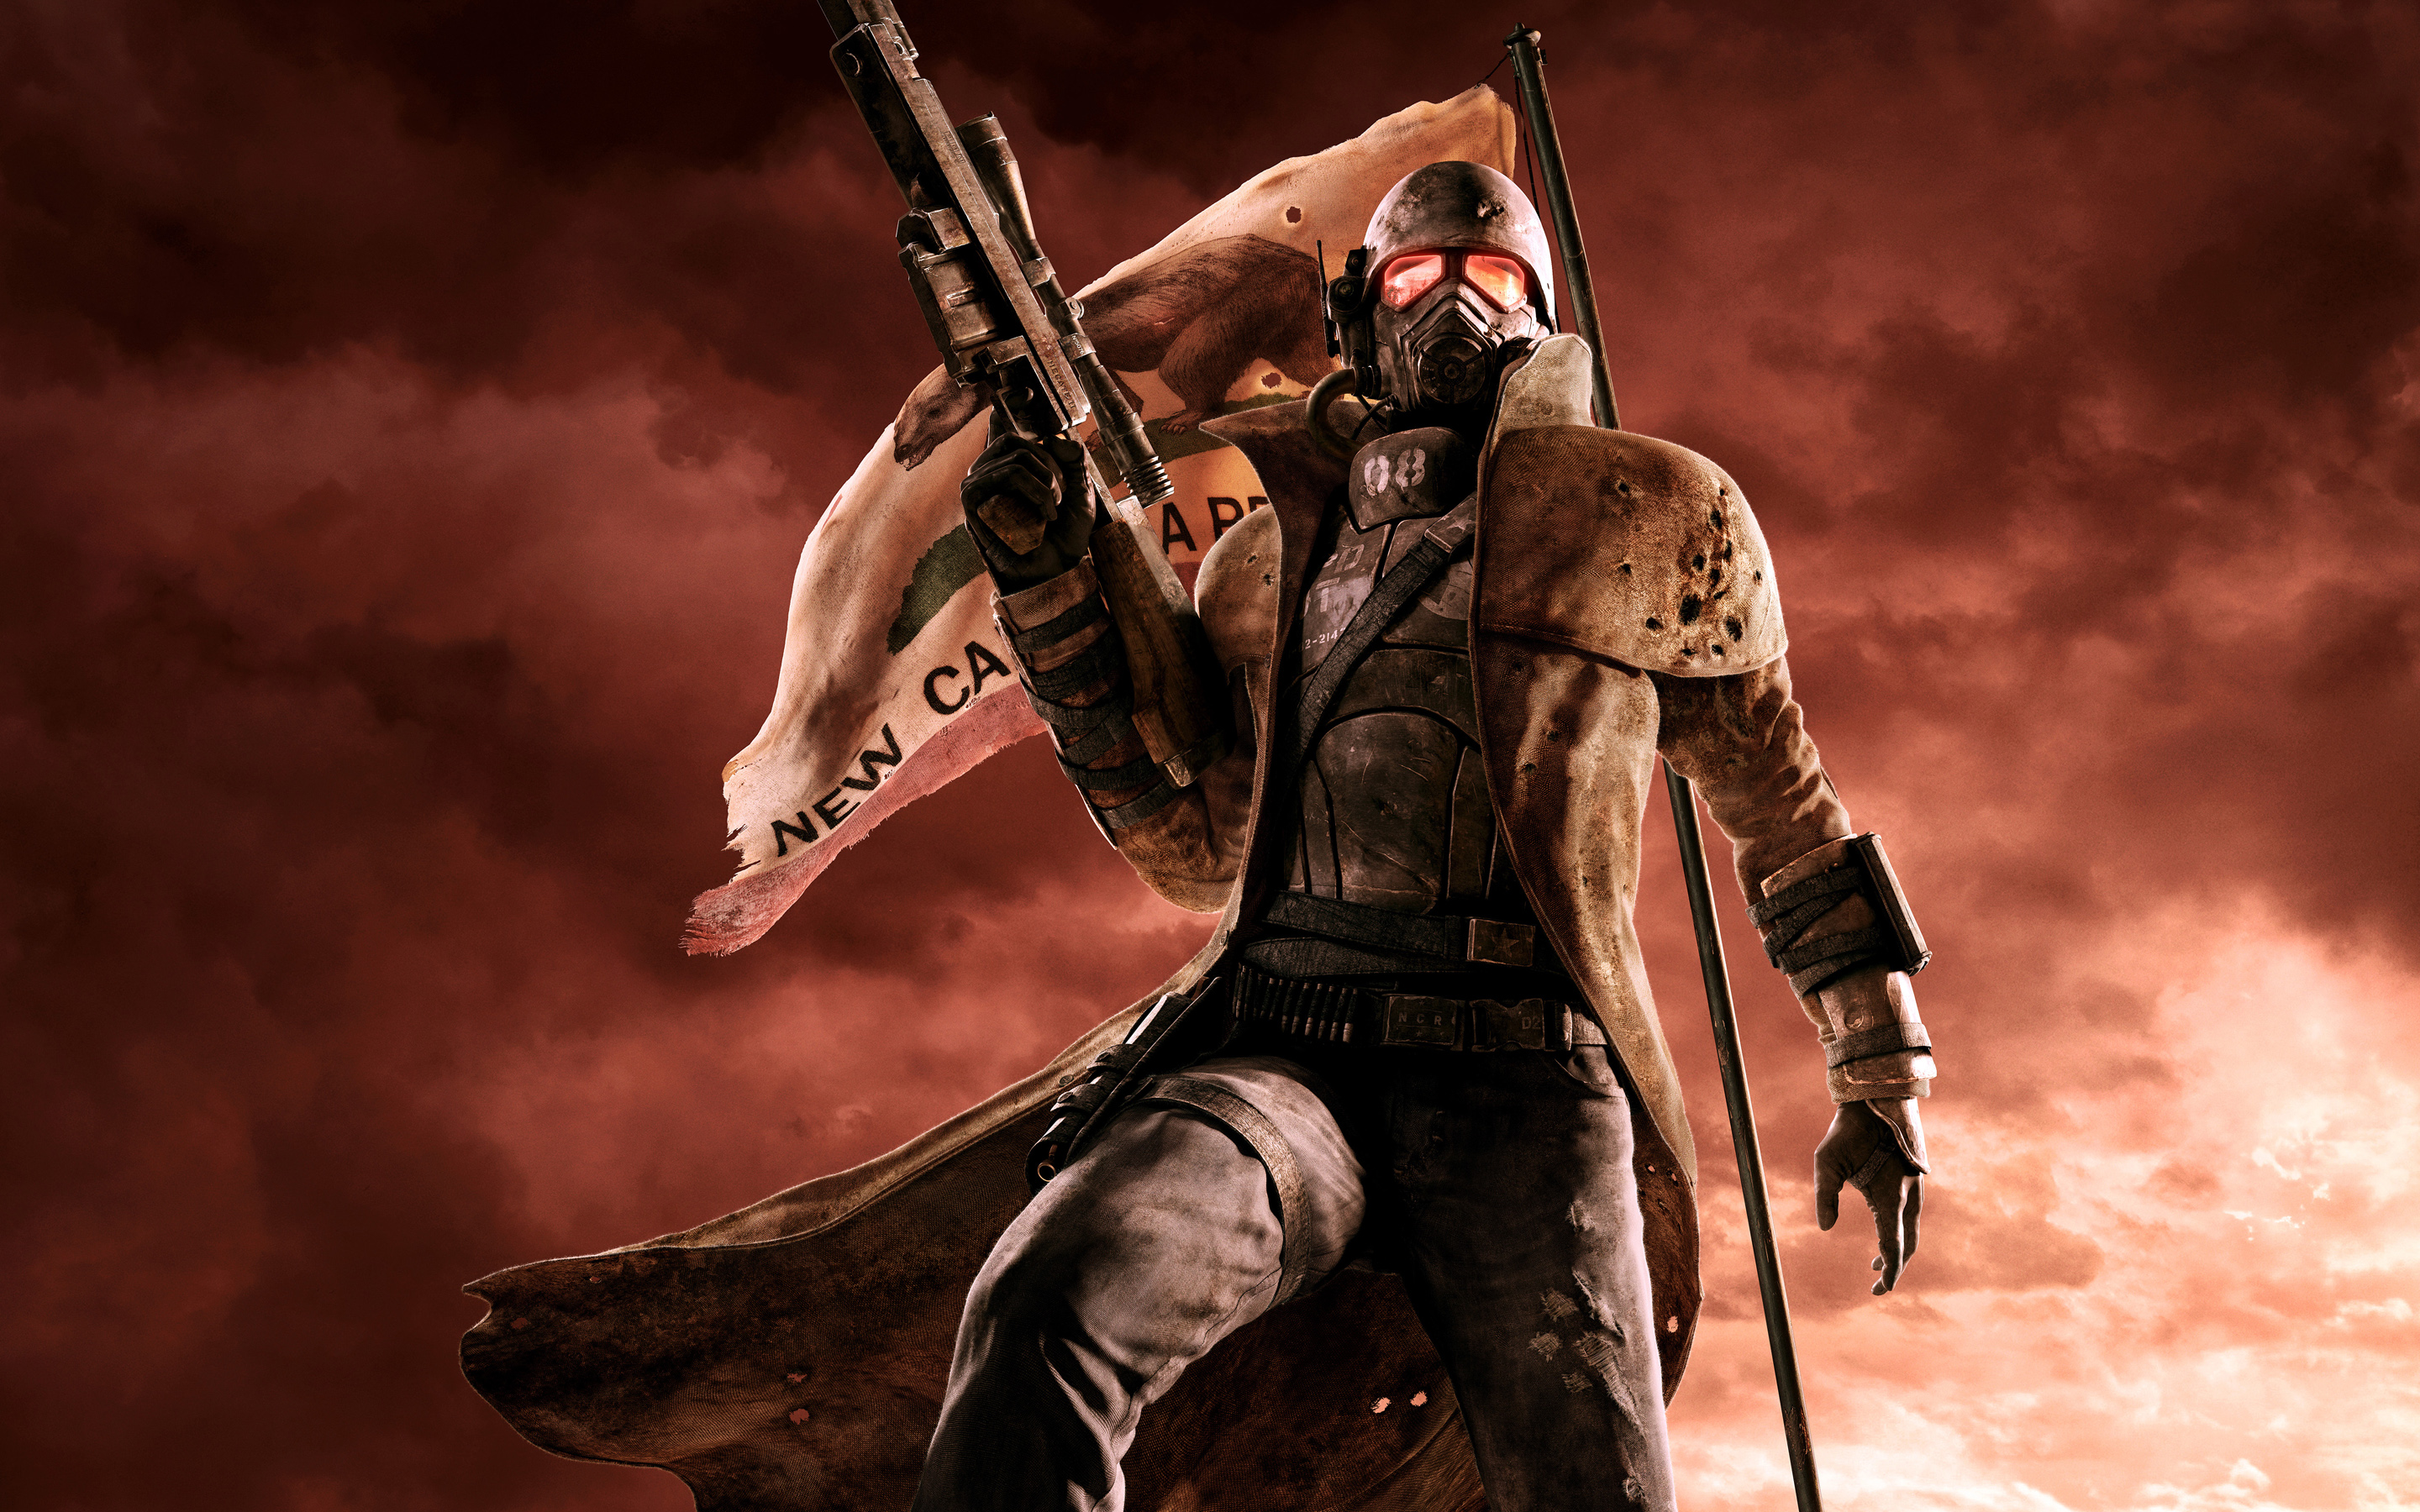 Fallout New Vegas Wallpapers HD Wallpapers 2880x1800